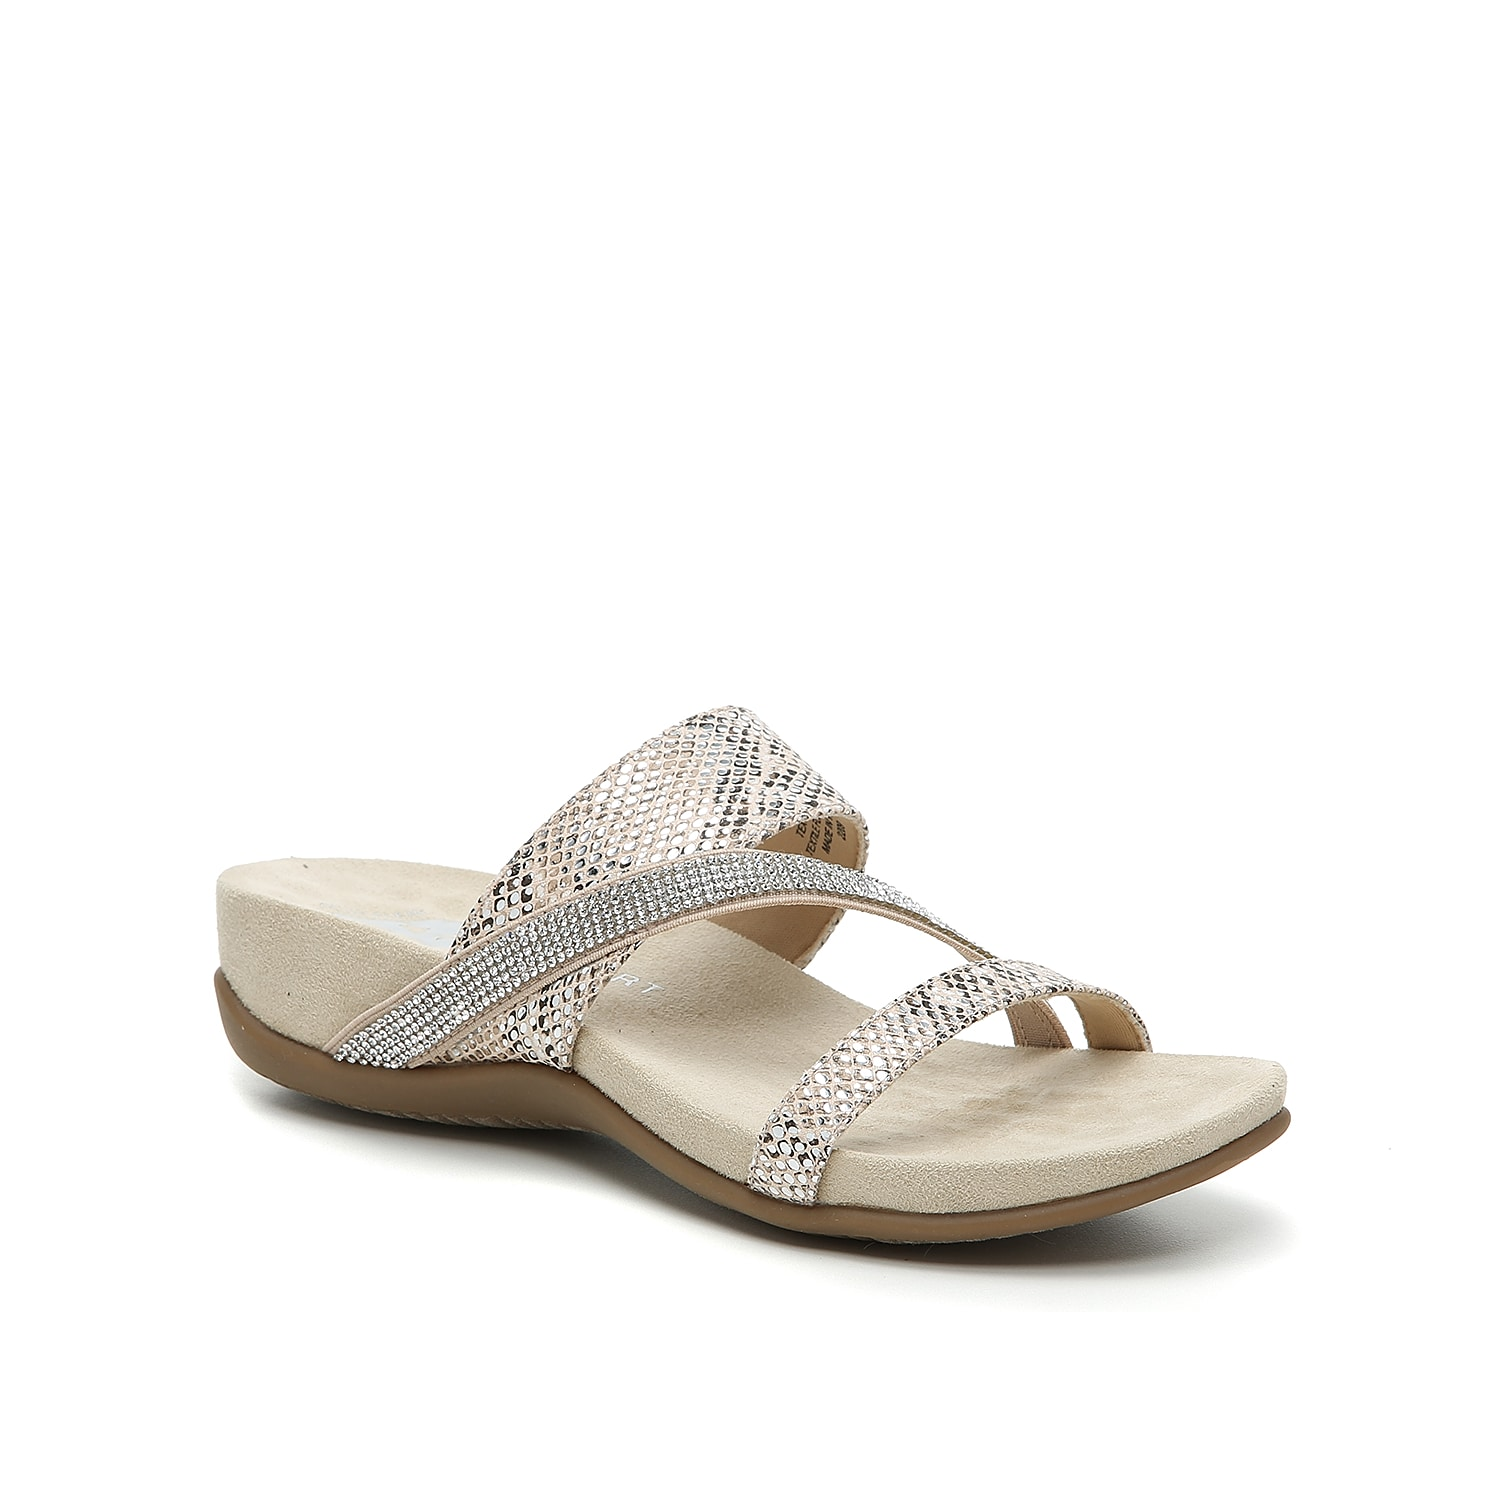 Feel nothing but comfort when wearing the Durand wedge sandal from Anne Klein Sport. The cushioned foam midsole and asymmetrical rhinestone strap keeps you feeling your best from day-to-night!